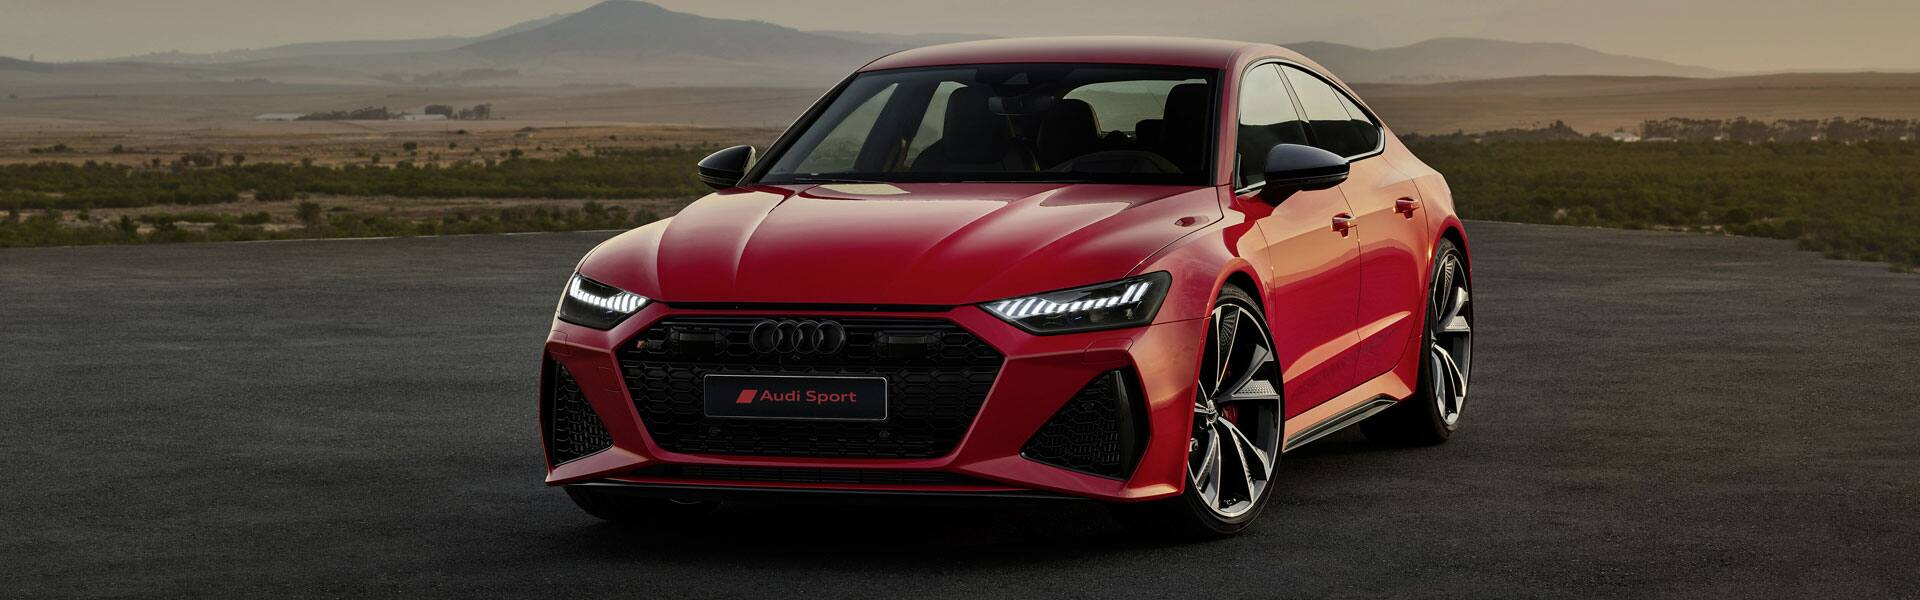 Audi RS 7 2020 in red